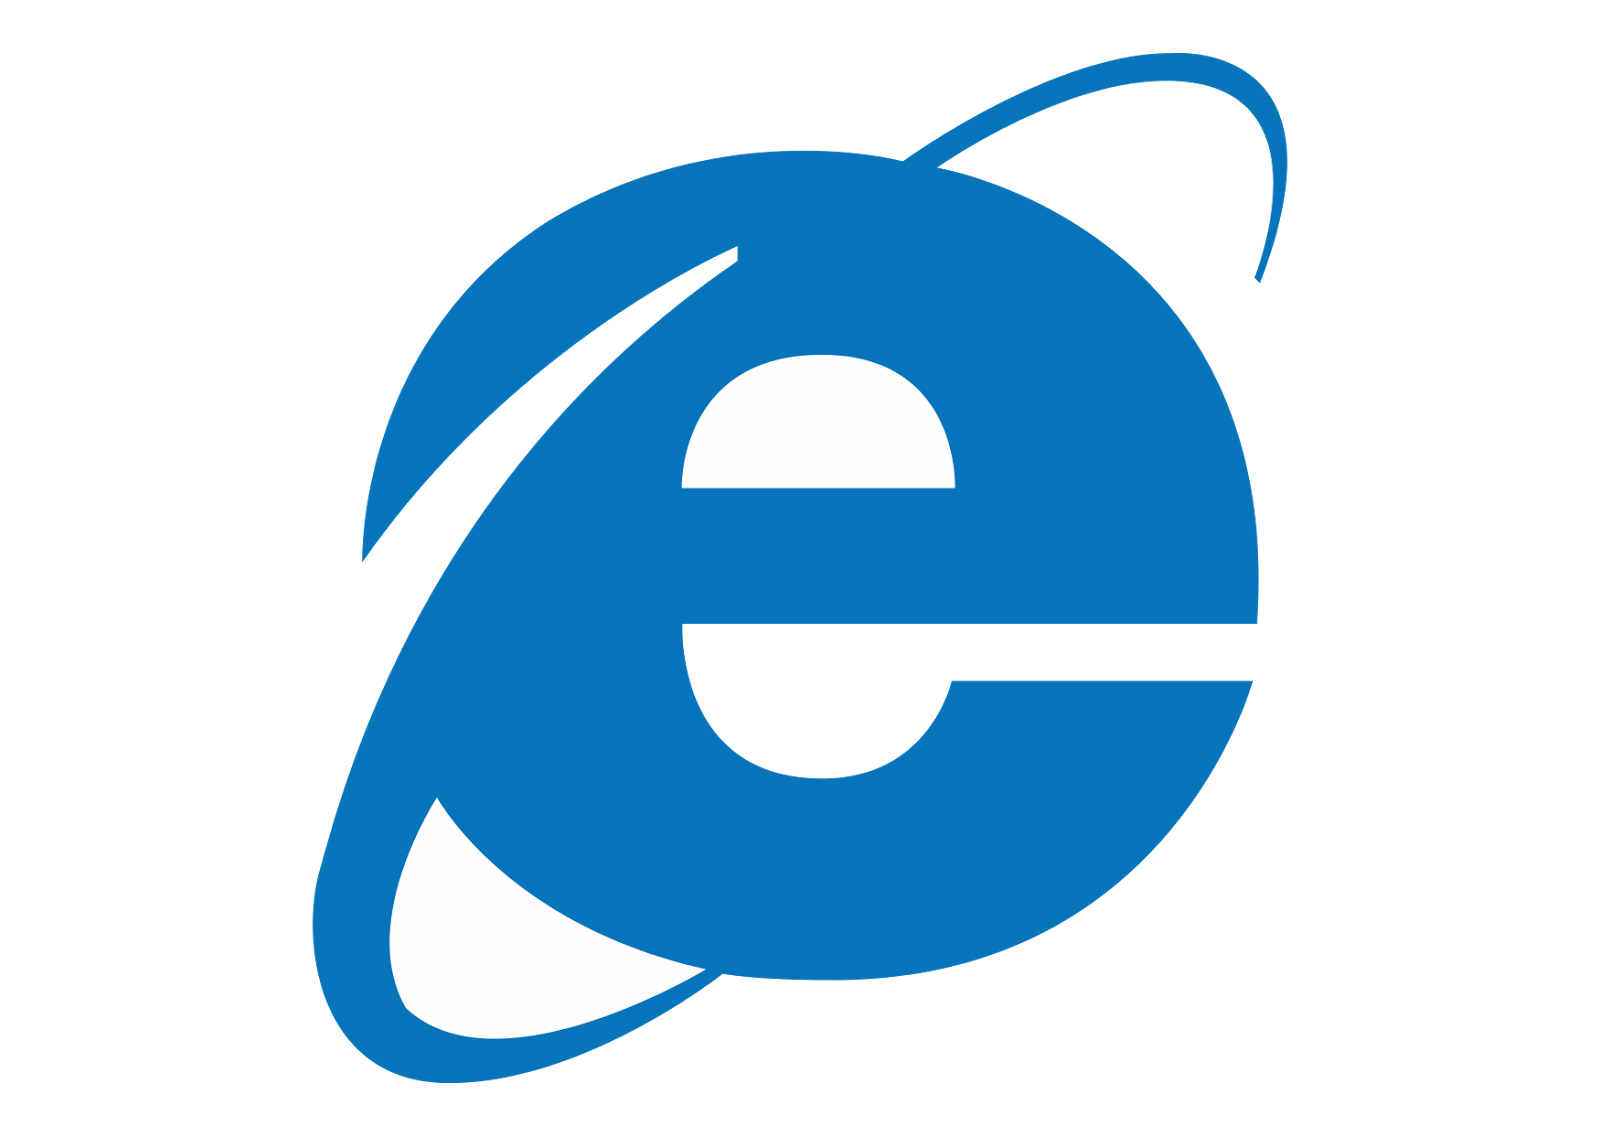 internet explorer logo vector format cdr ai eps svg